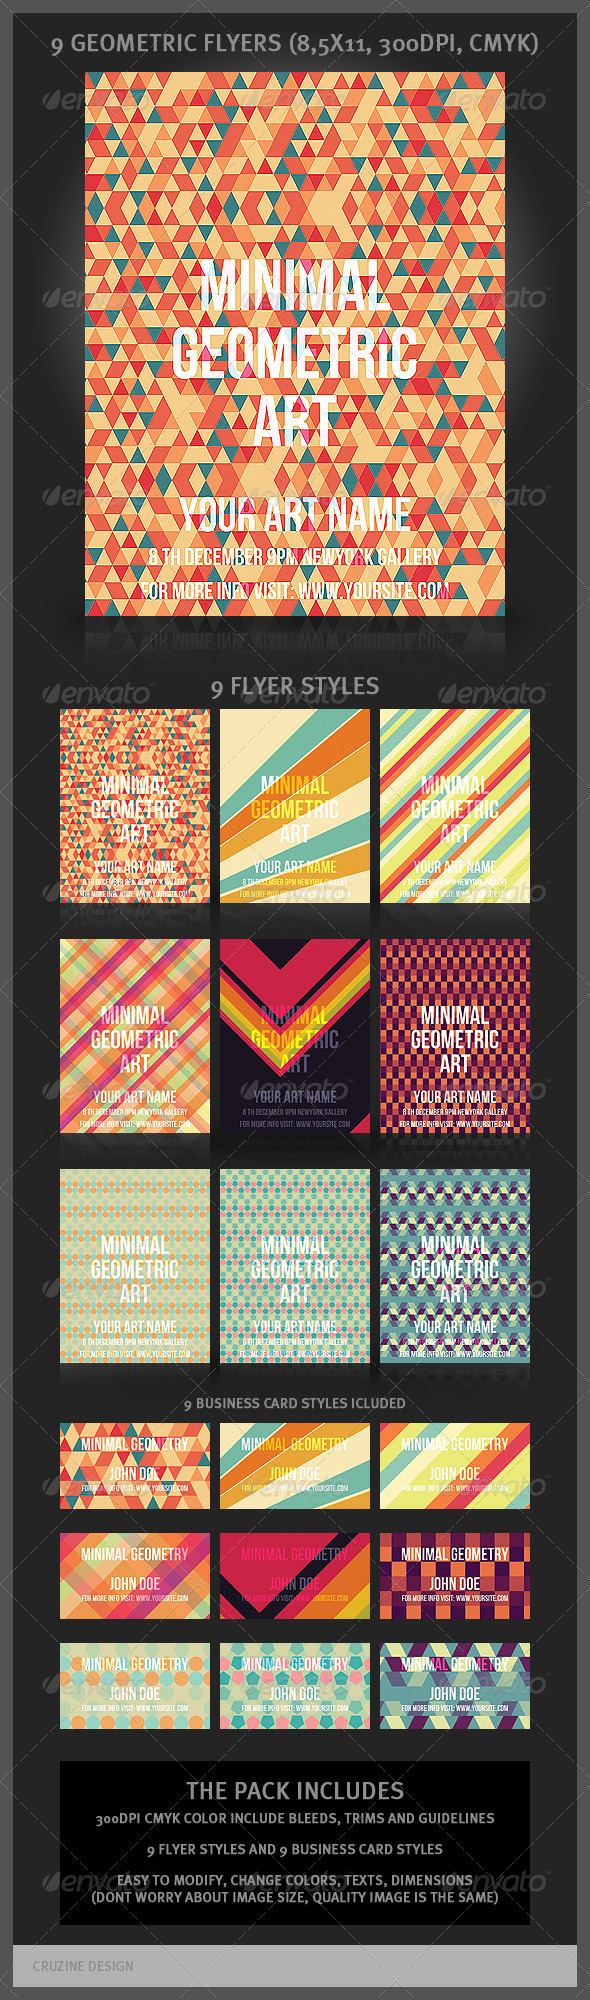 GraphicRiver 9 Geometric Flyers and Business Cards 899126